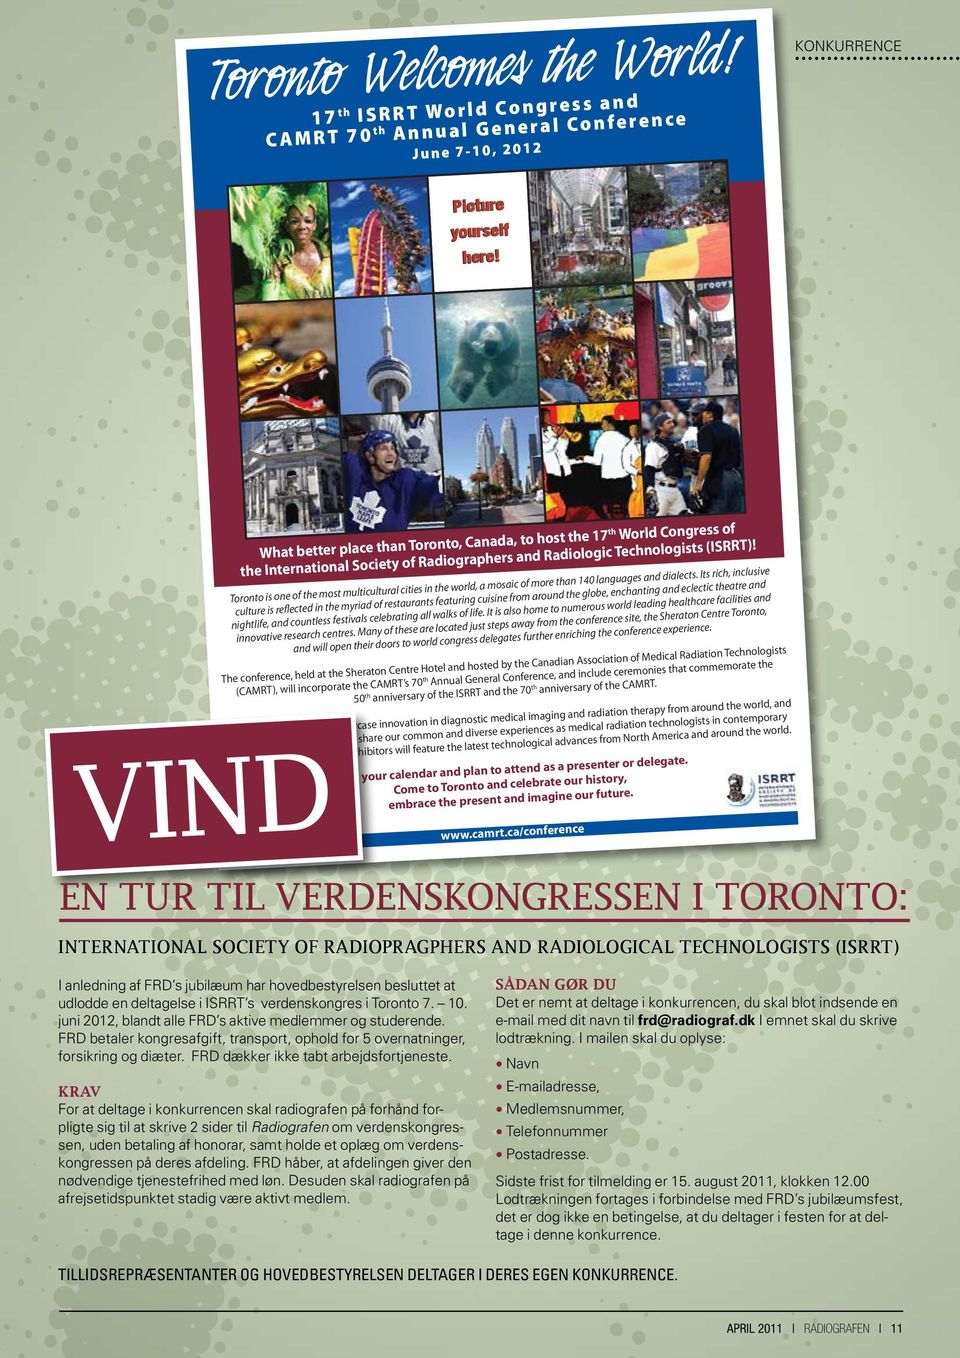 Toronto is one of the most multicultural cities in the world, a mosaic of more than 140 languages and dialects.